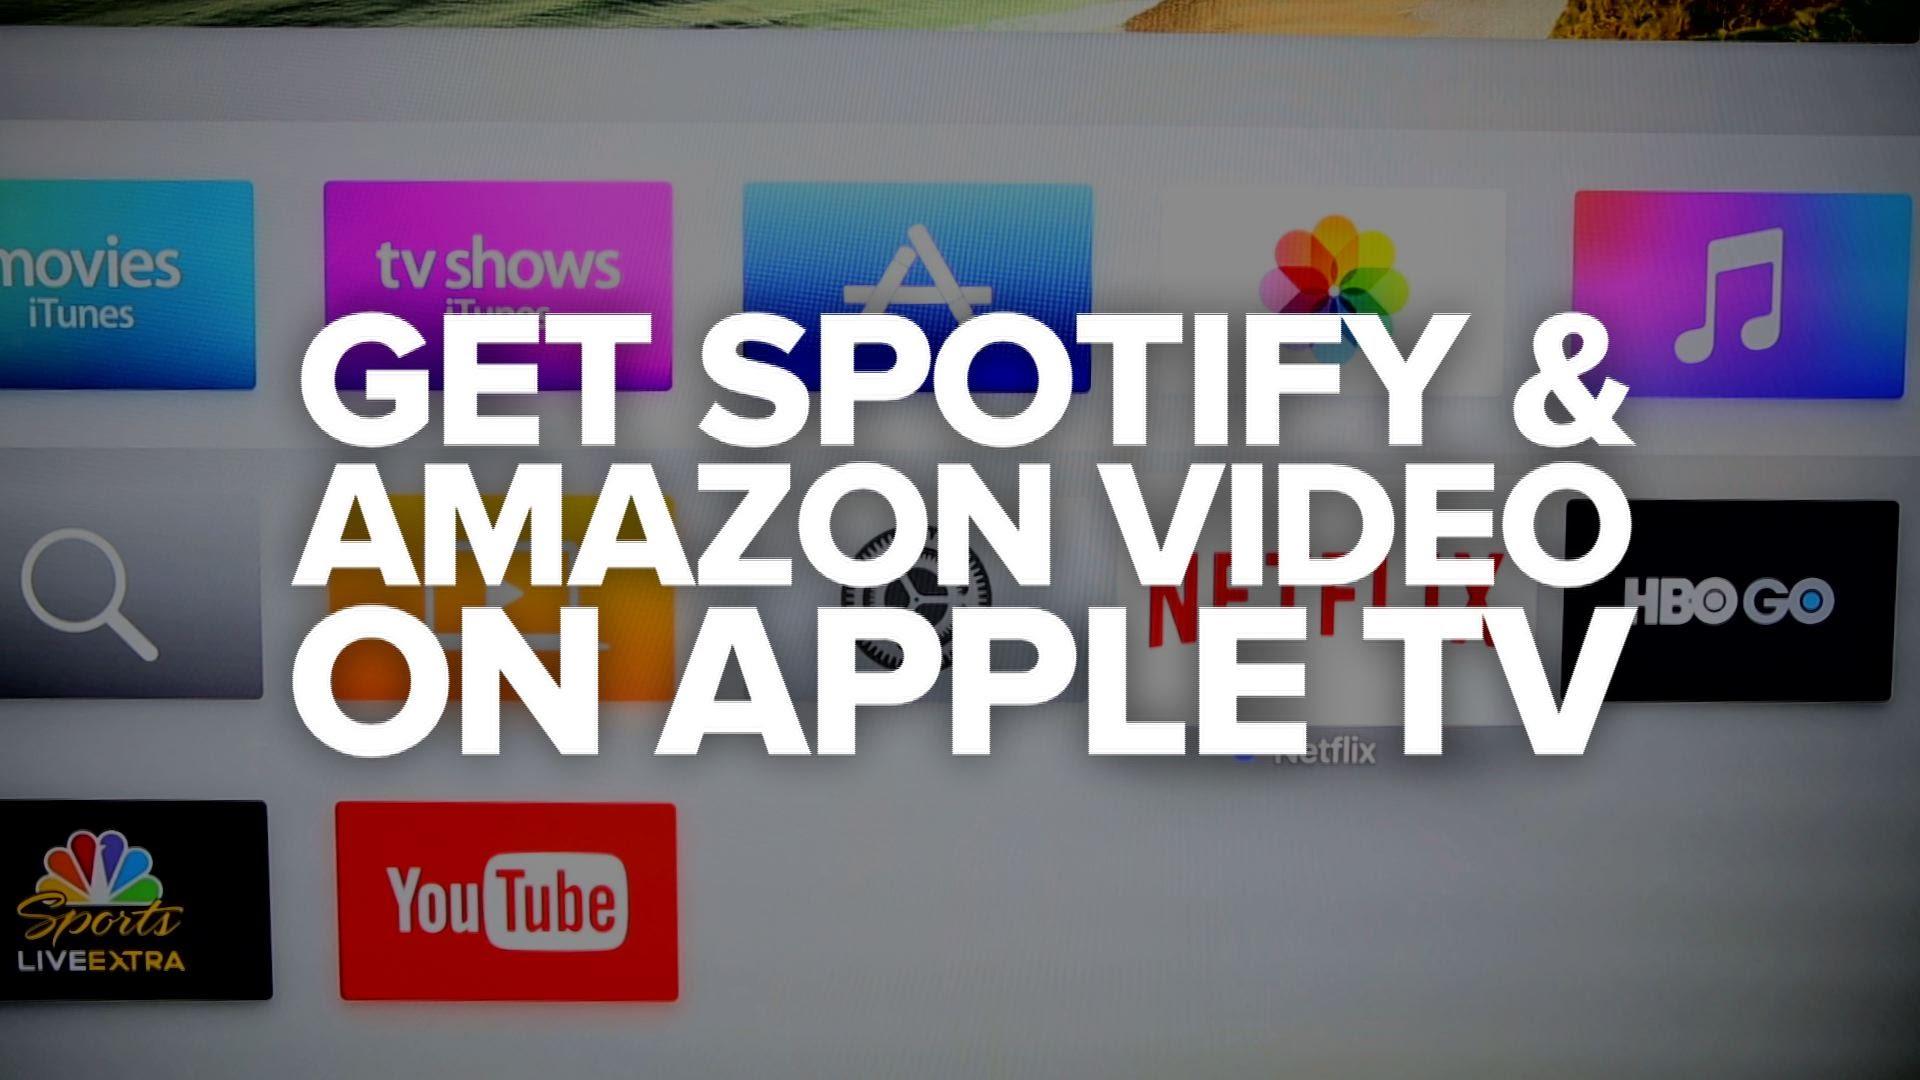 CNET How To – An easy way to stream Spotify and Amazon Video to your Apple TV